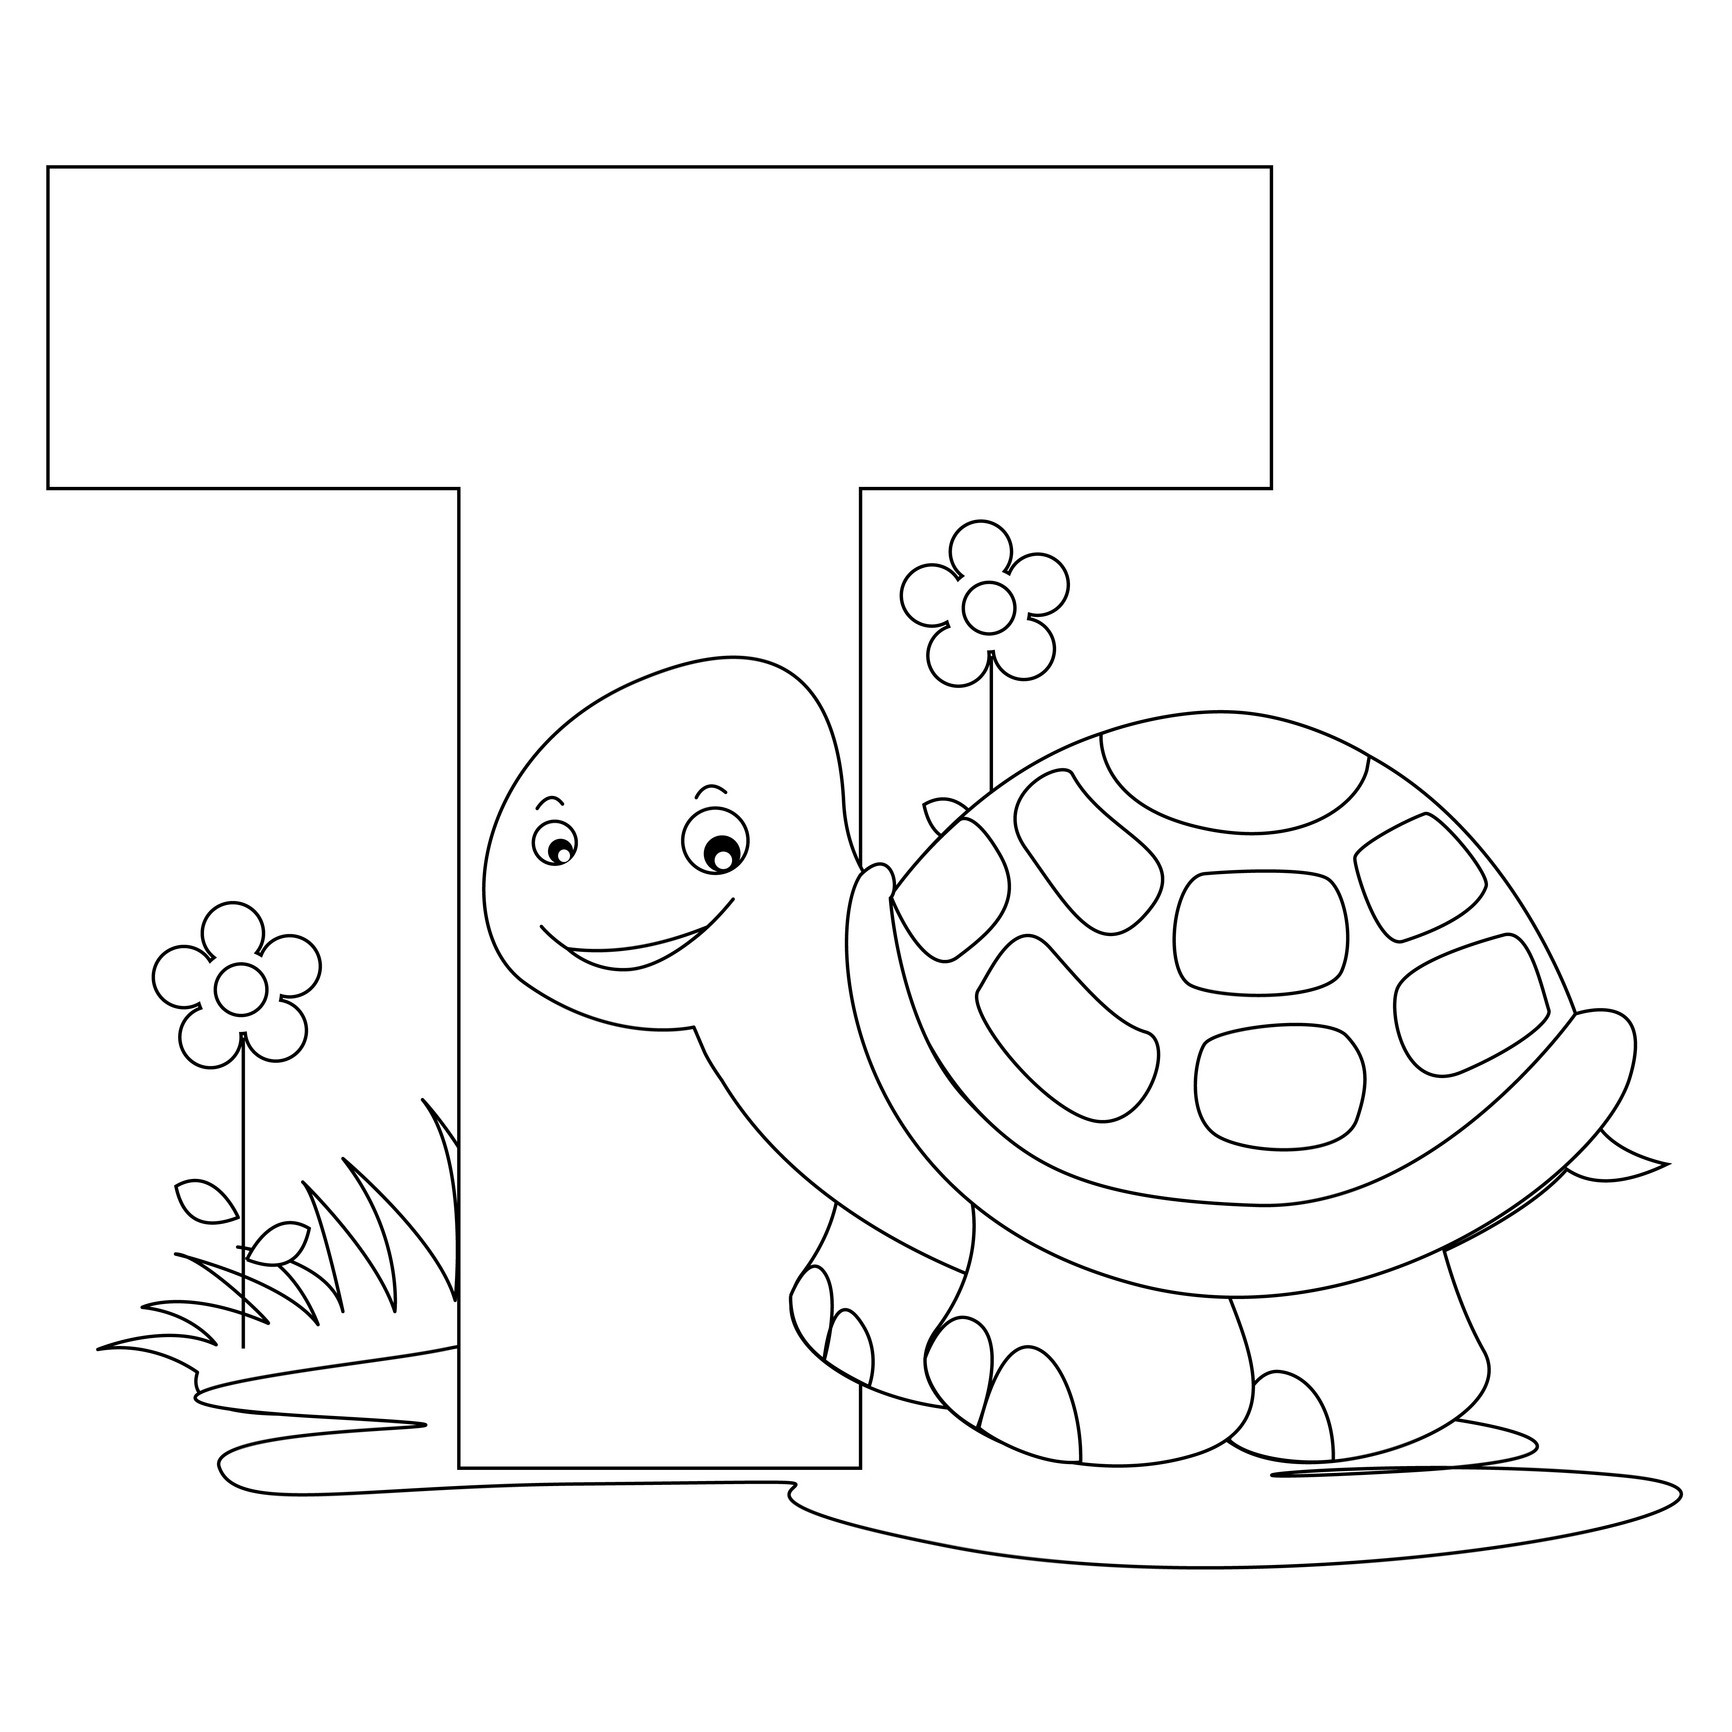 Free Printable Alphabet Coloring Pages For Kids Best Coloring Page Of A